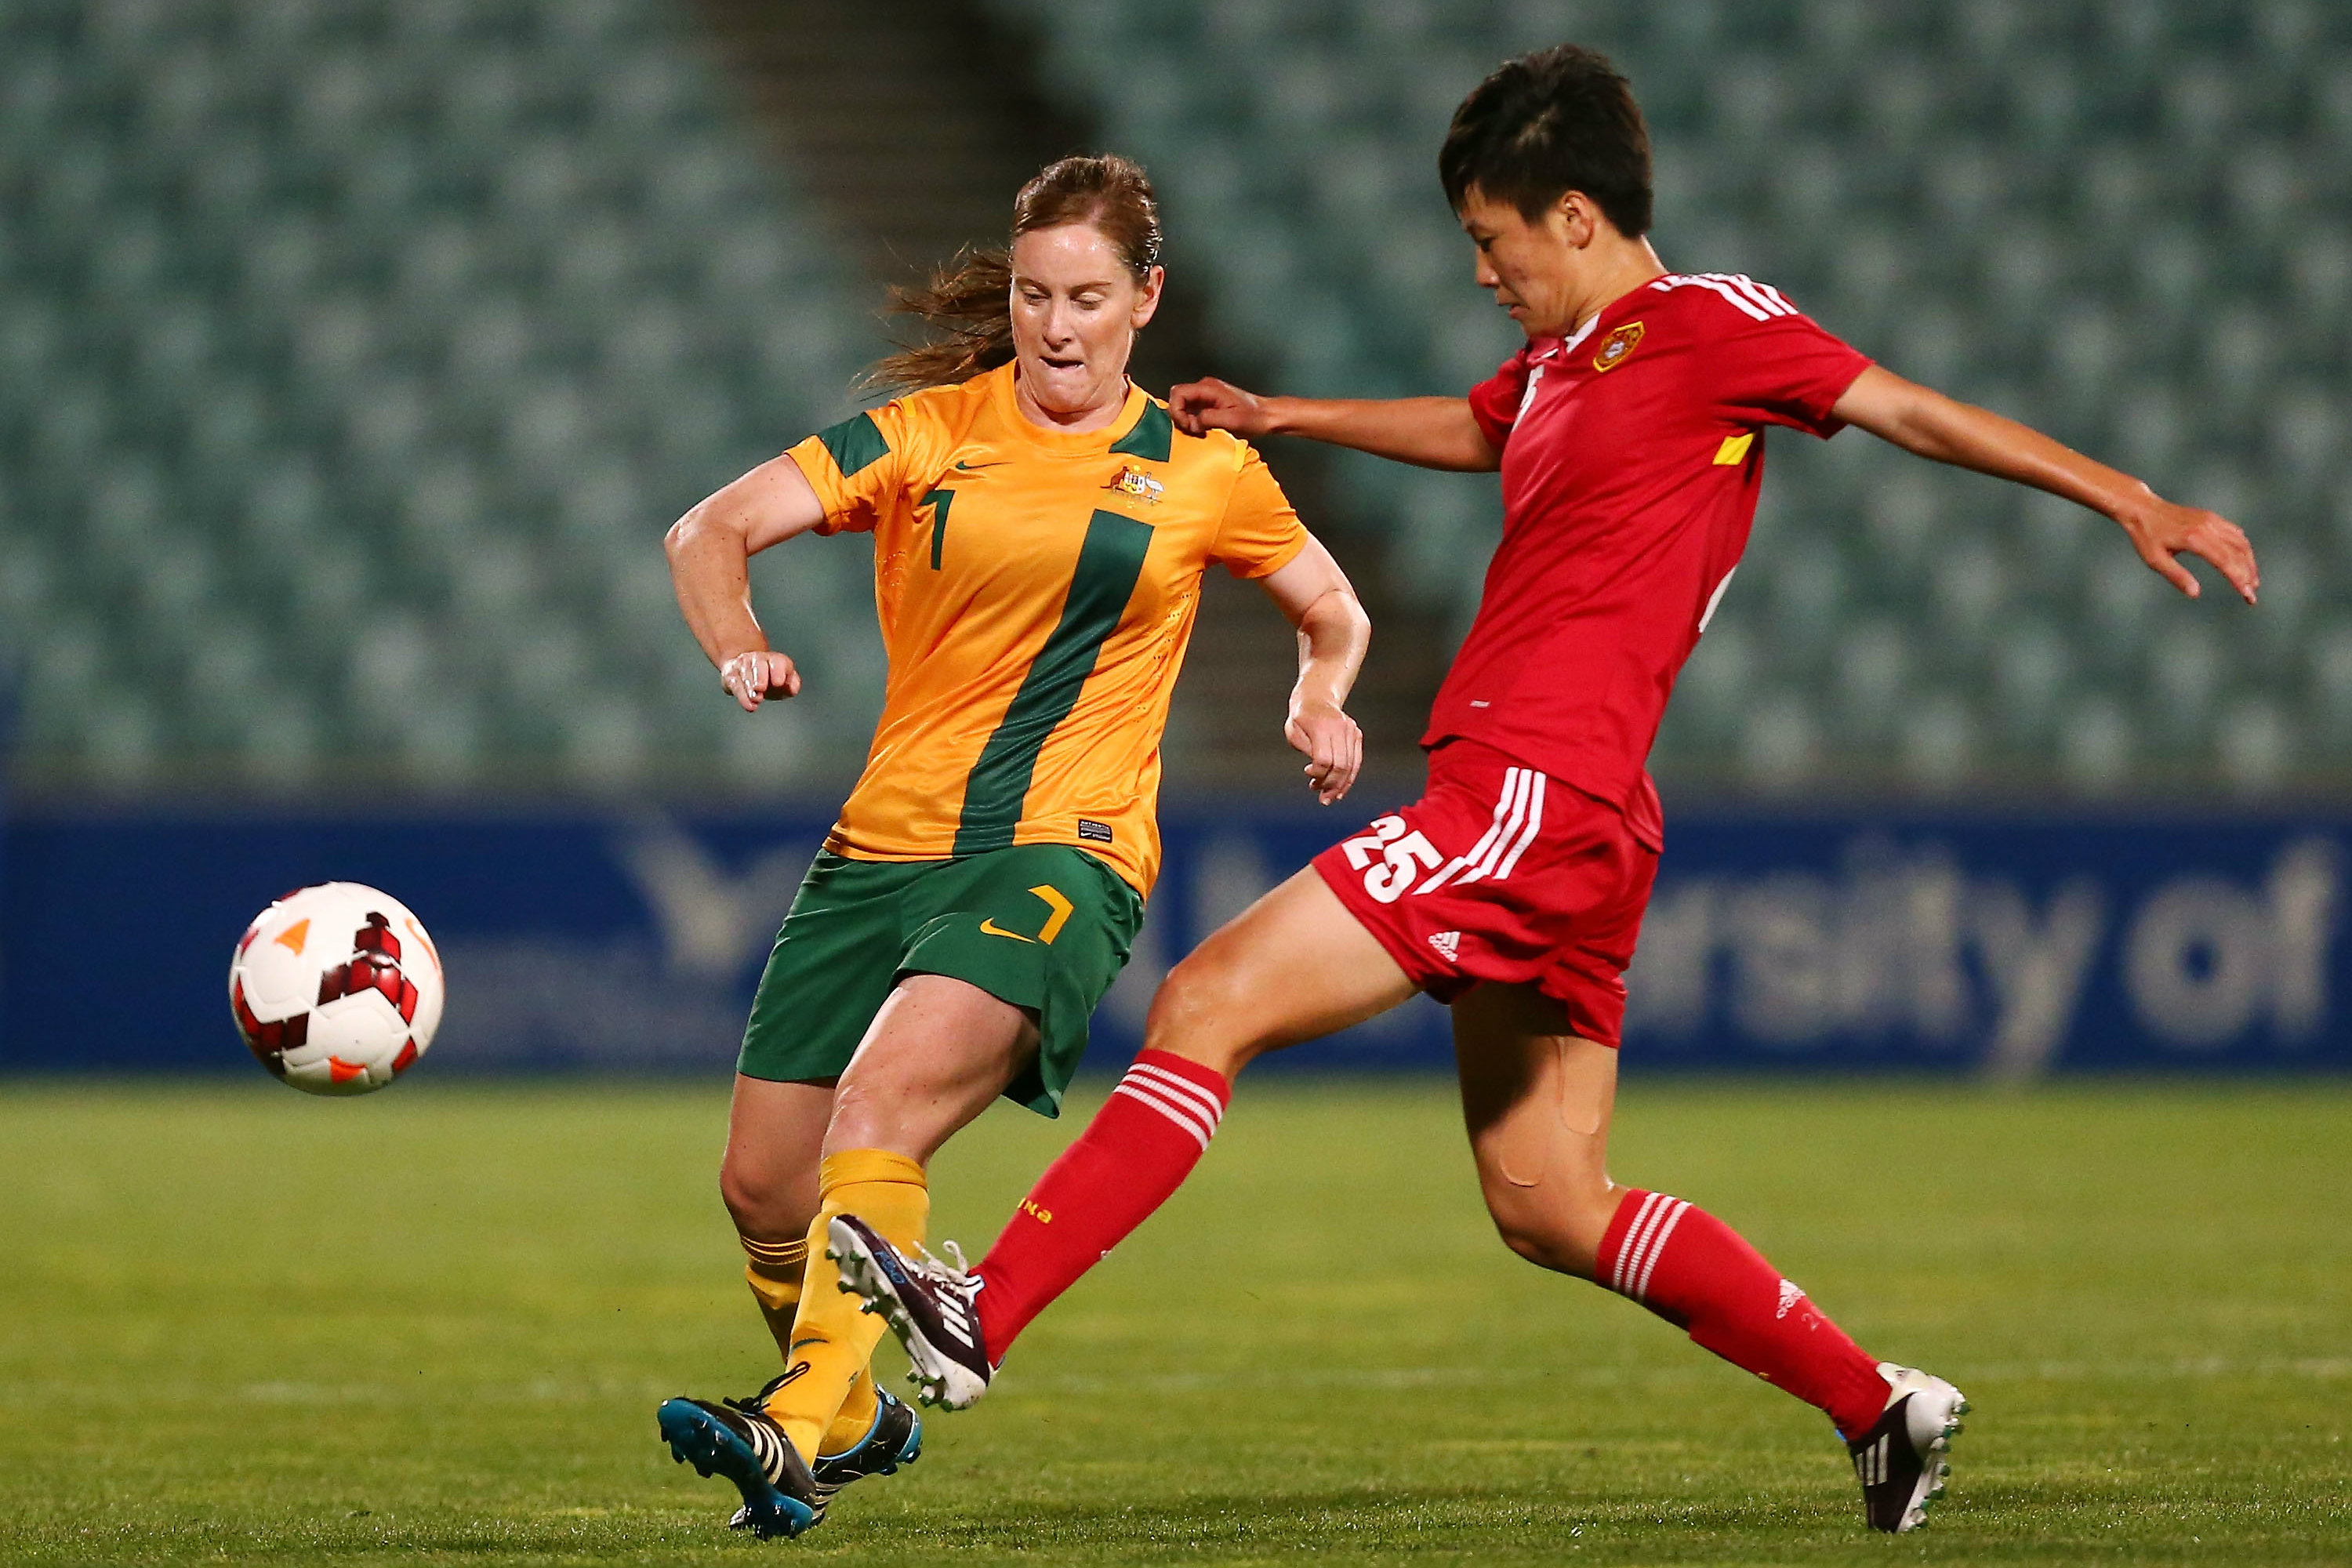 Collette McCallum was a key cog of the Westfied Matildas midfield for many years.